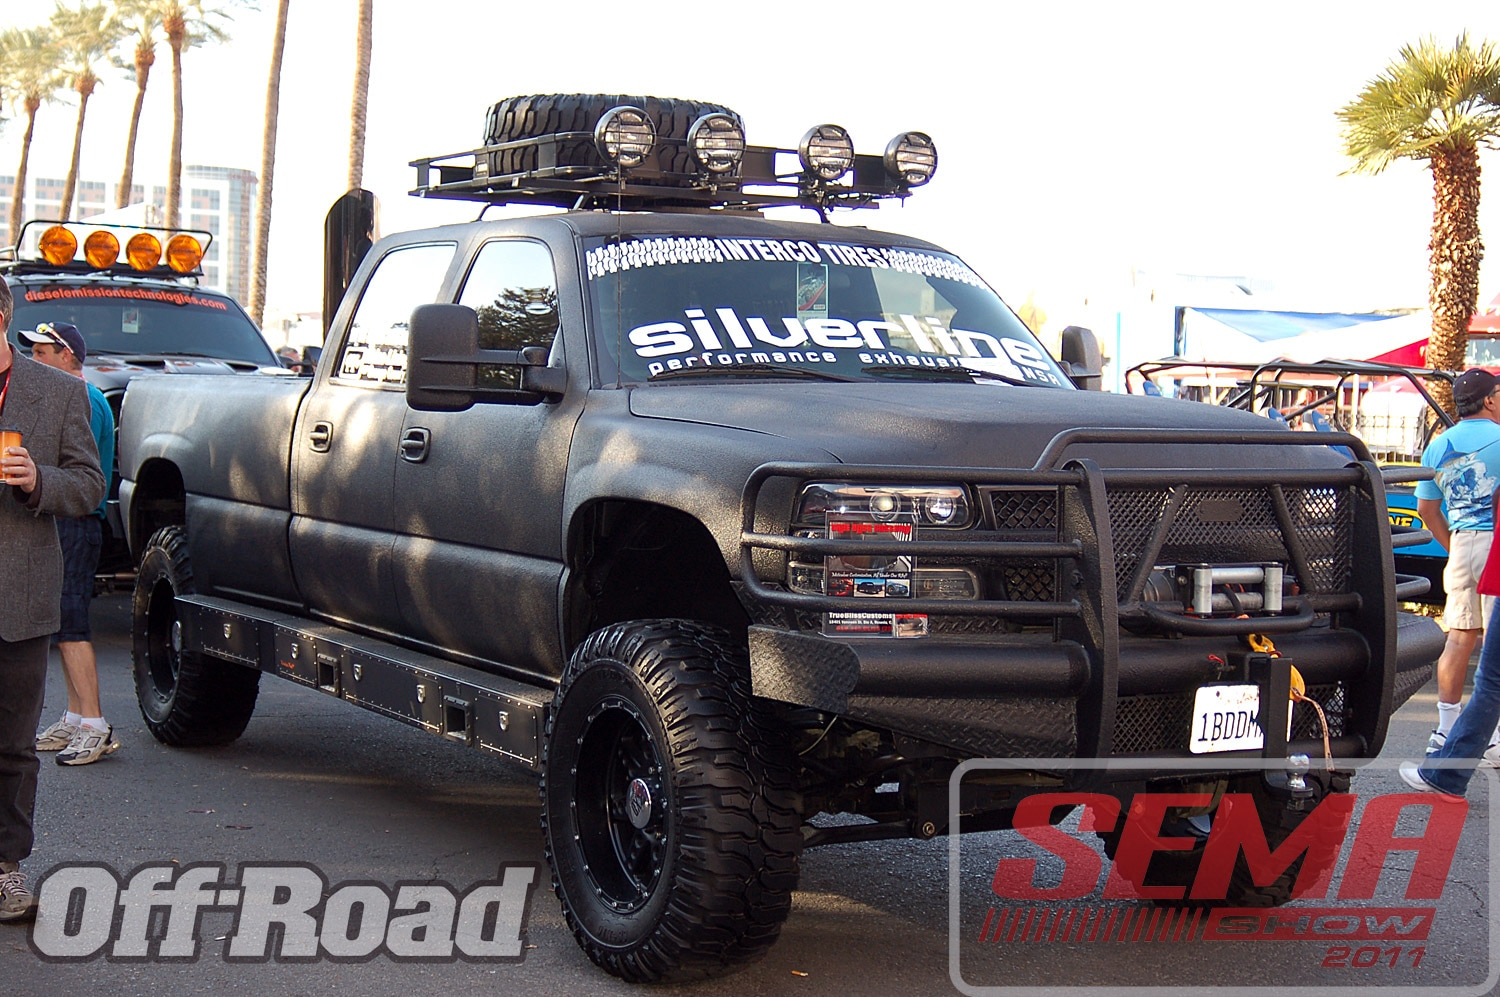 102312or 0191+2011 sema show+off road trucks and products